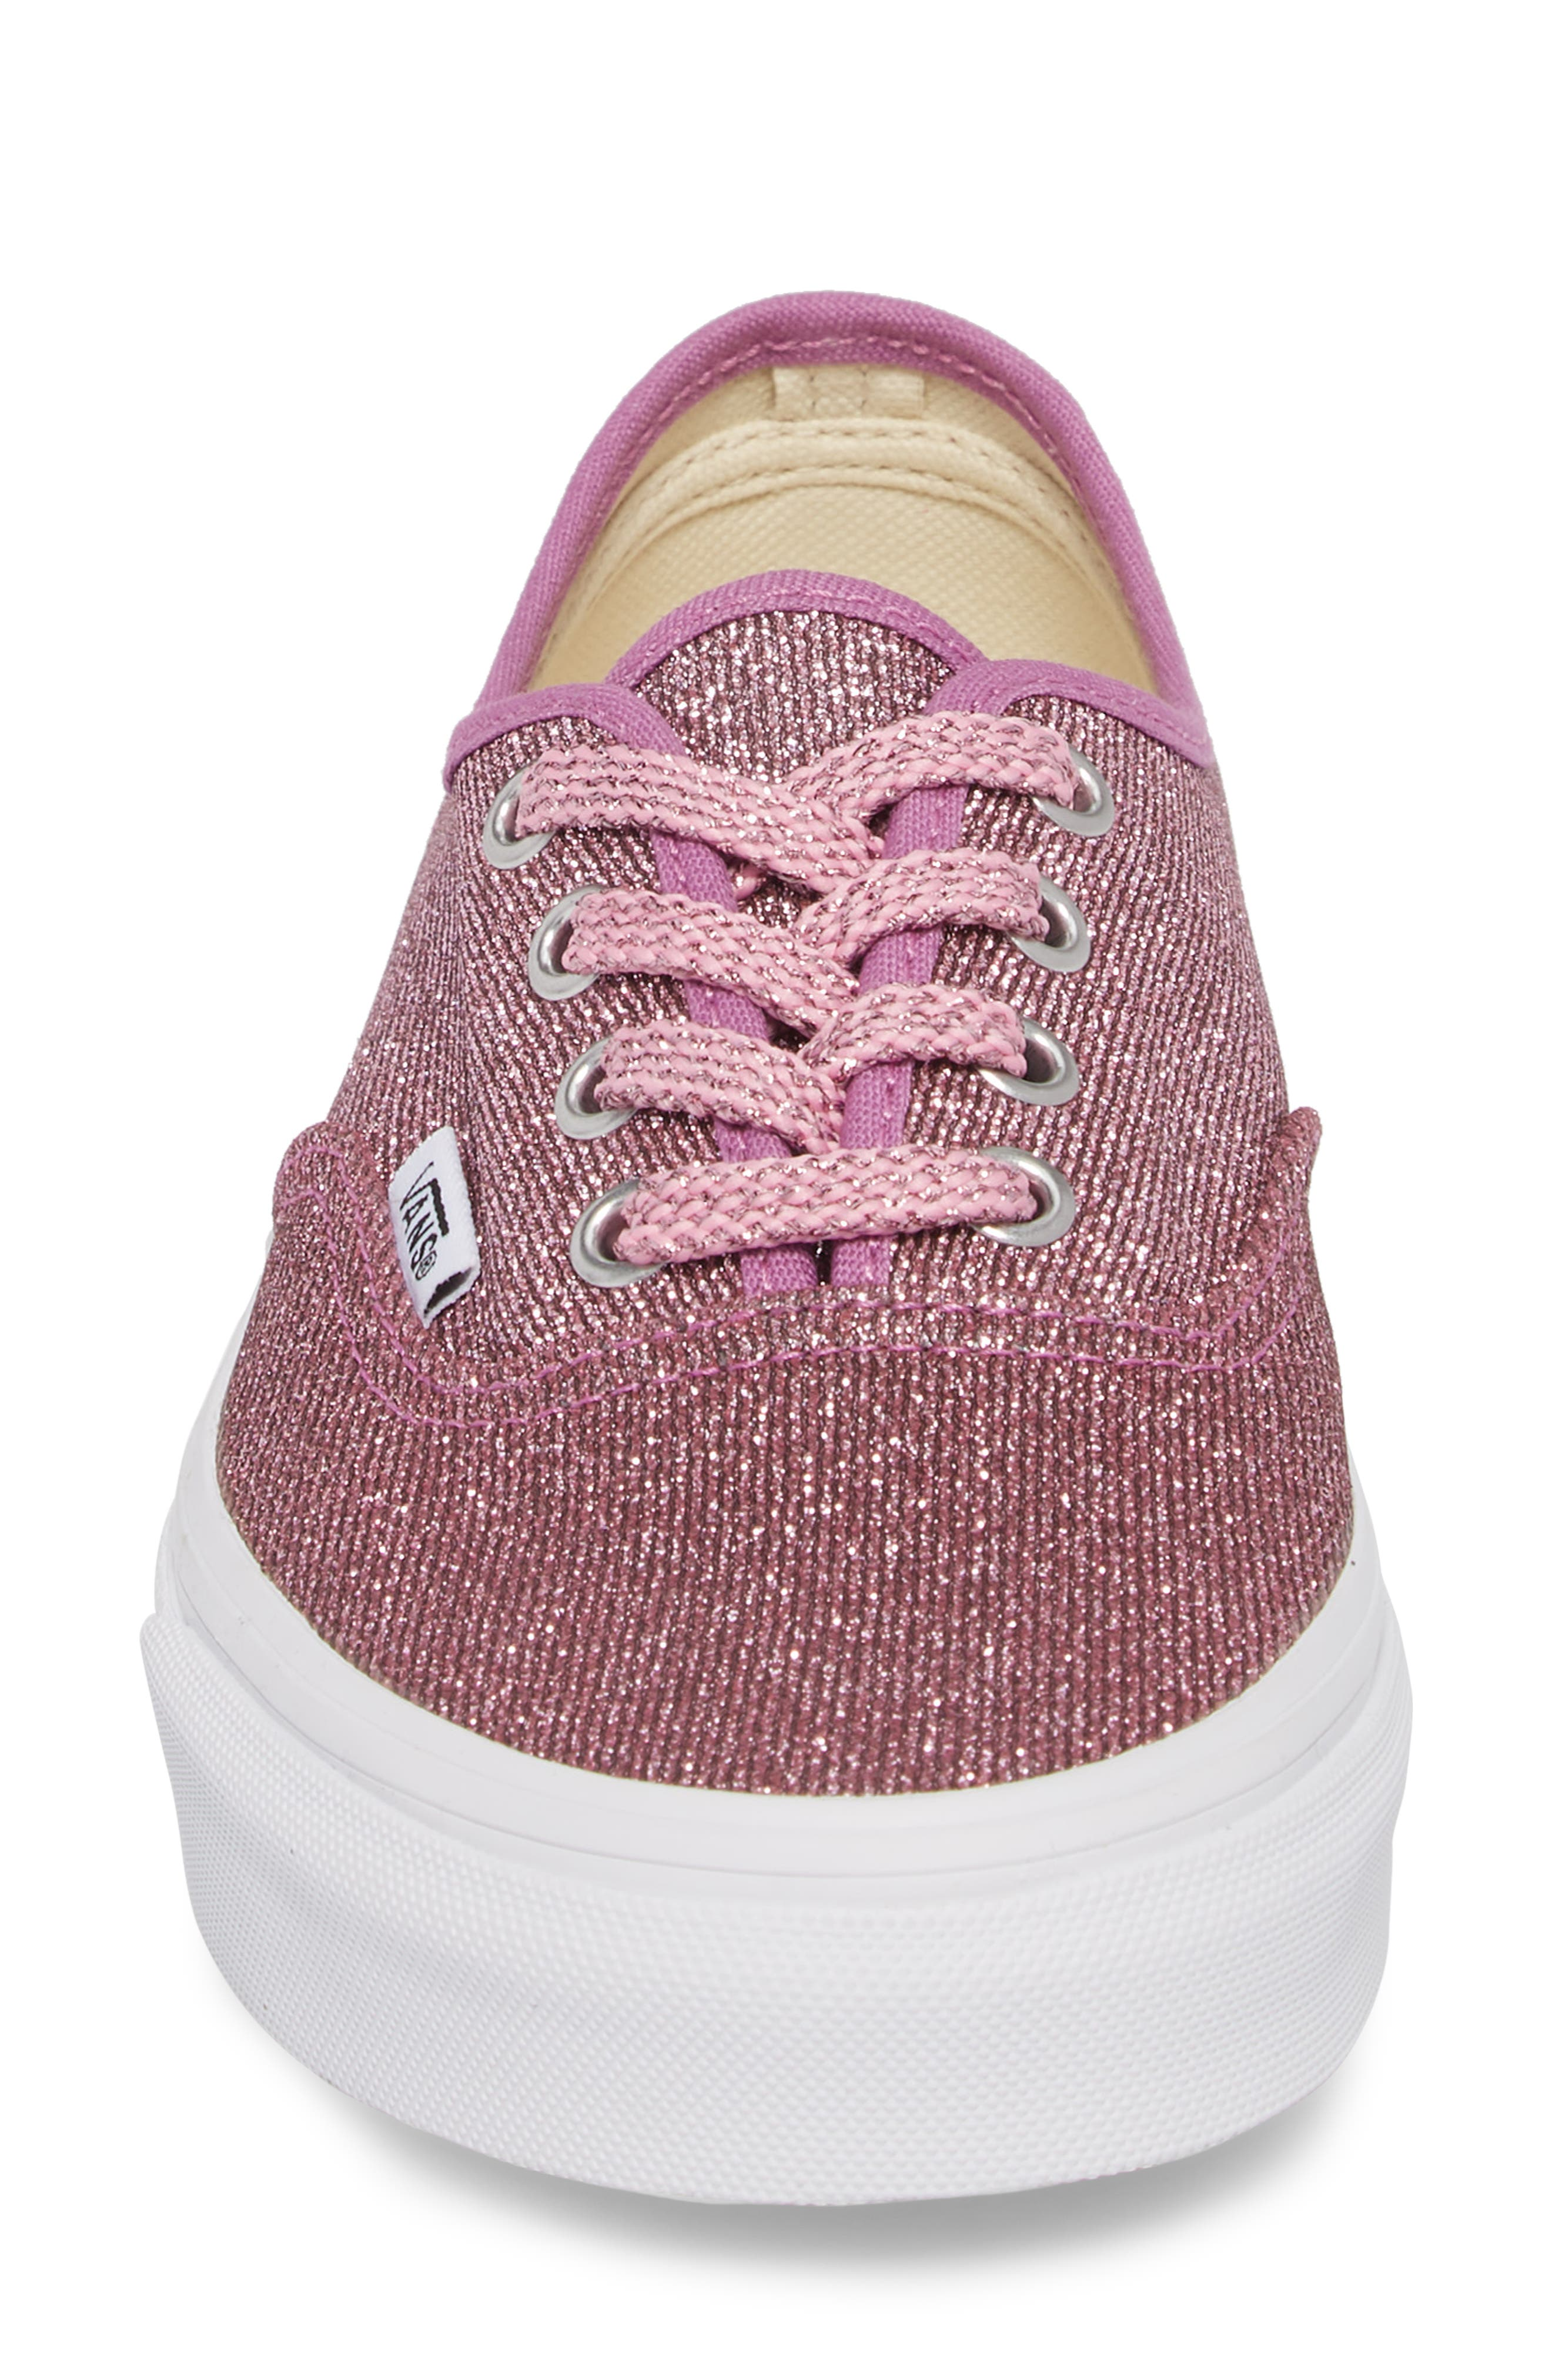 UA Authentic Lurex Sneaker,                             Alternate thumbnail 6, color,                             Pink/ True White Glitter